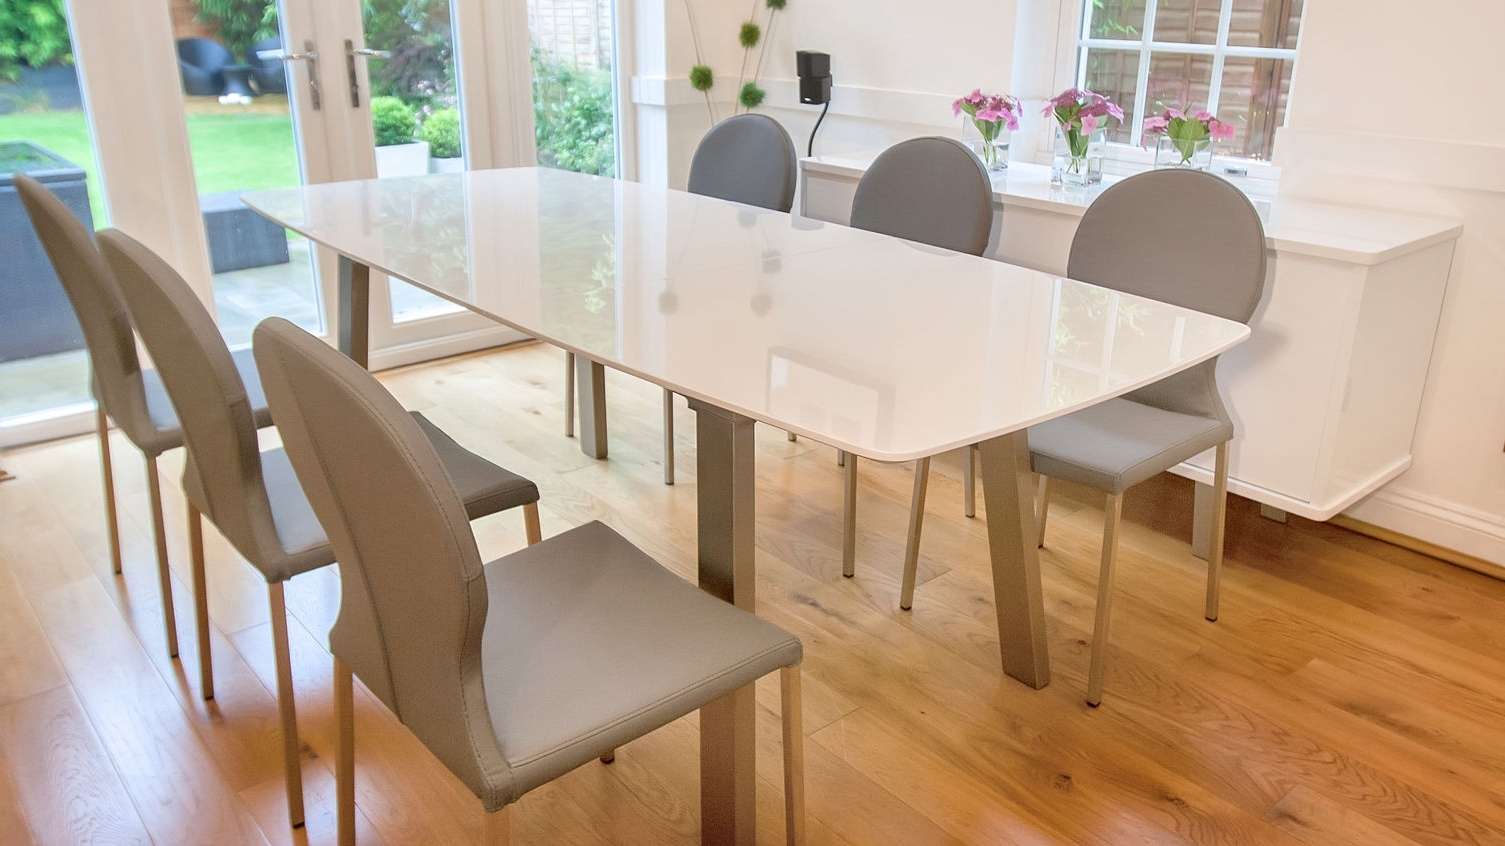 Extending Dining Room Tables And Chairs Dining Room Chair Slipcovers throughout Well-known White Extendable Dining Tables And Chairs